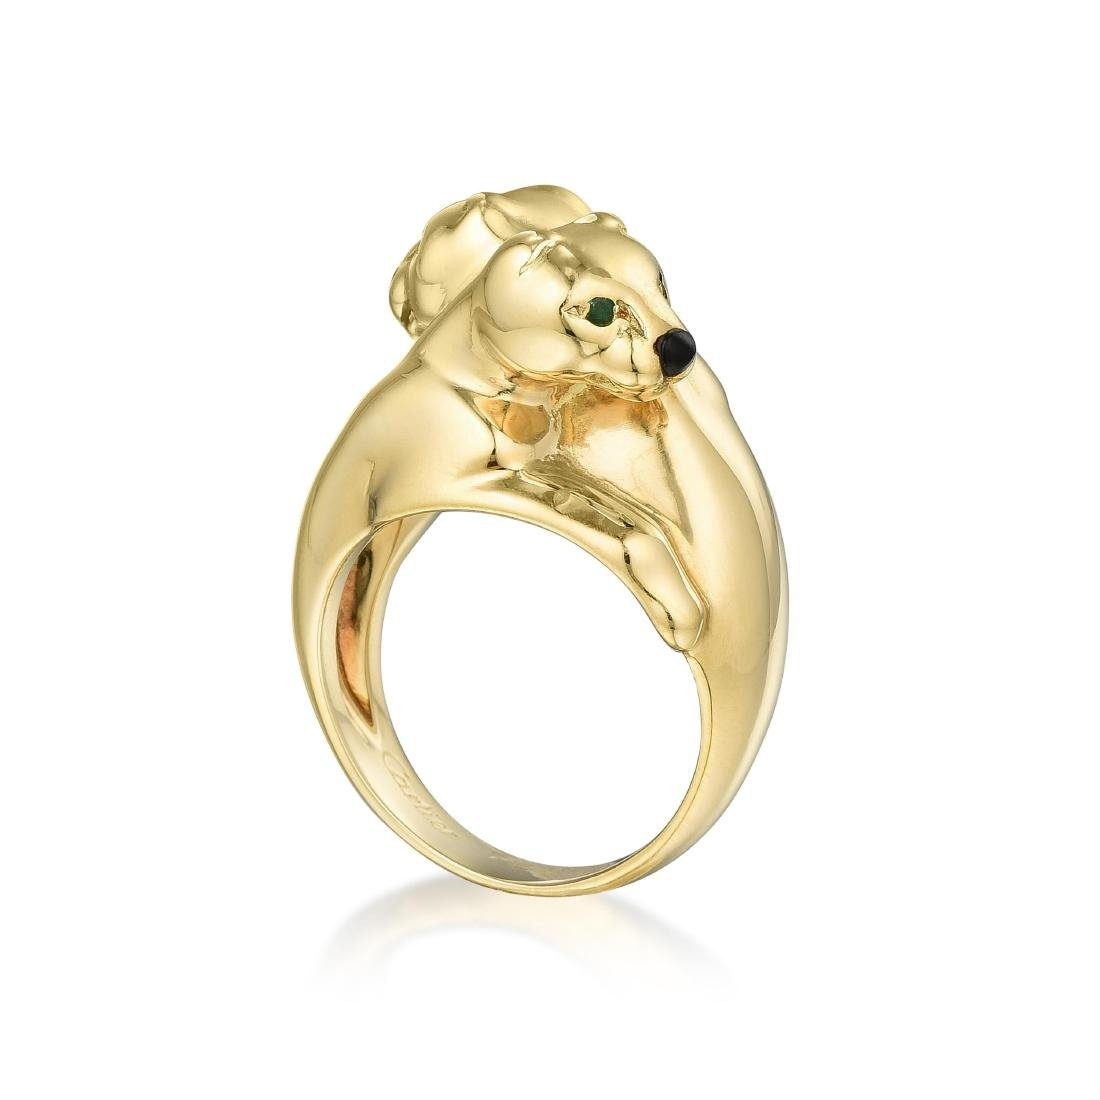 ce73250c95cb8 Cartier Double Panther Ring - Apr 11, 2019   Fortuna Auction in NY